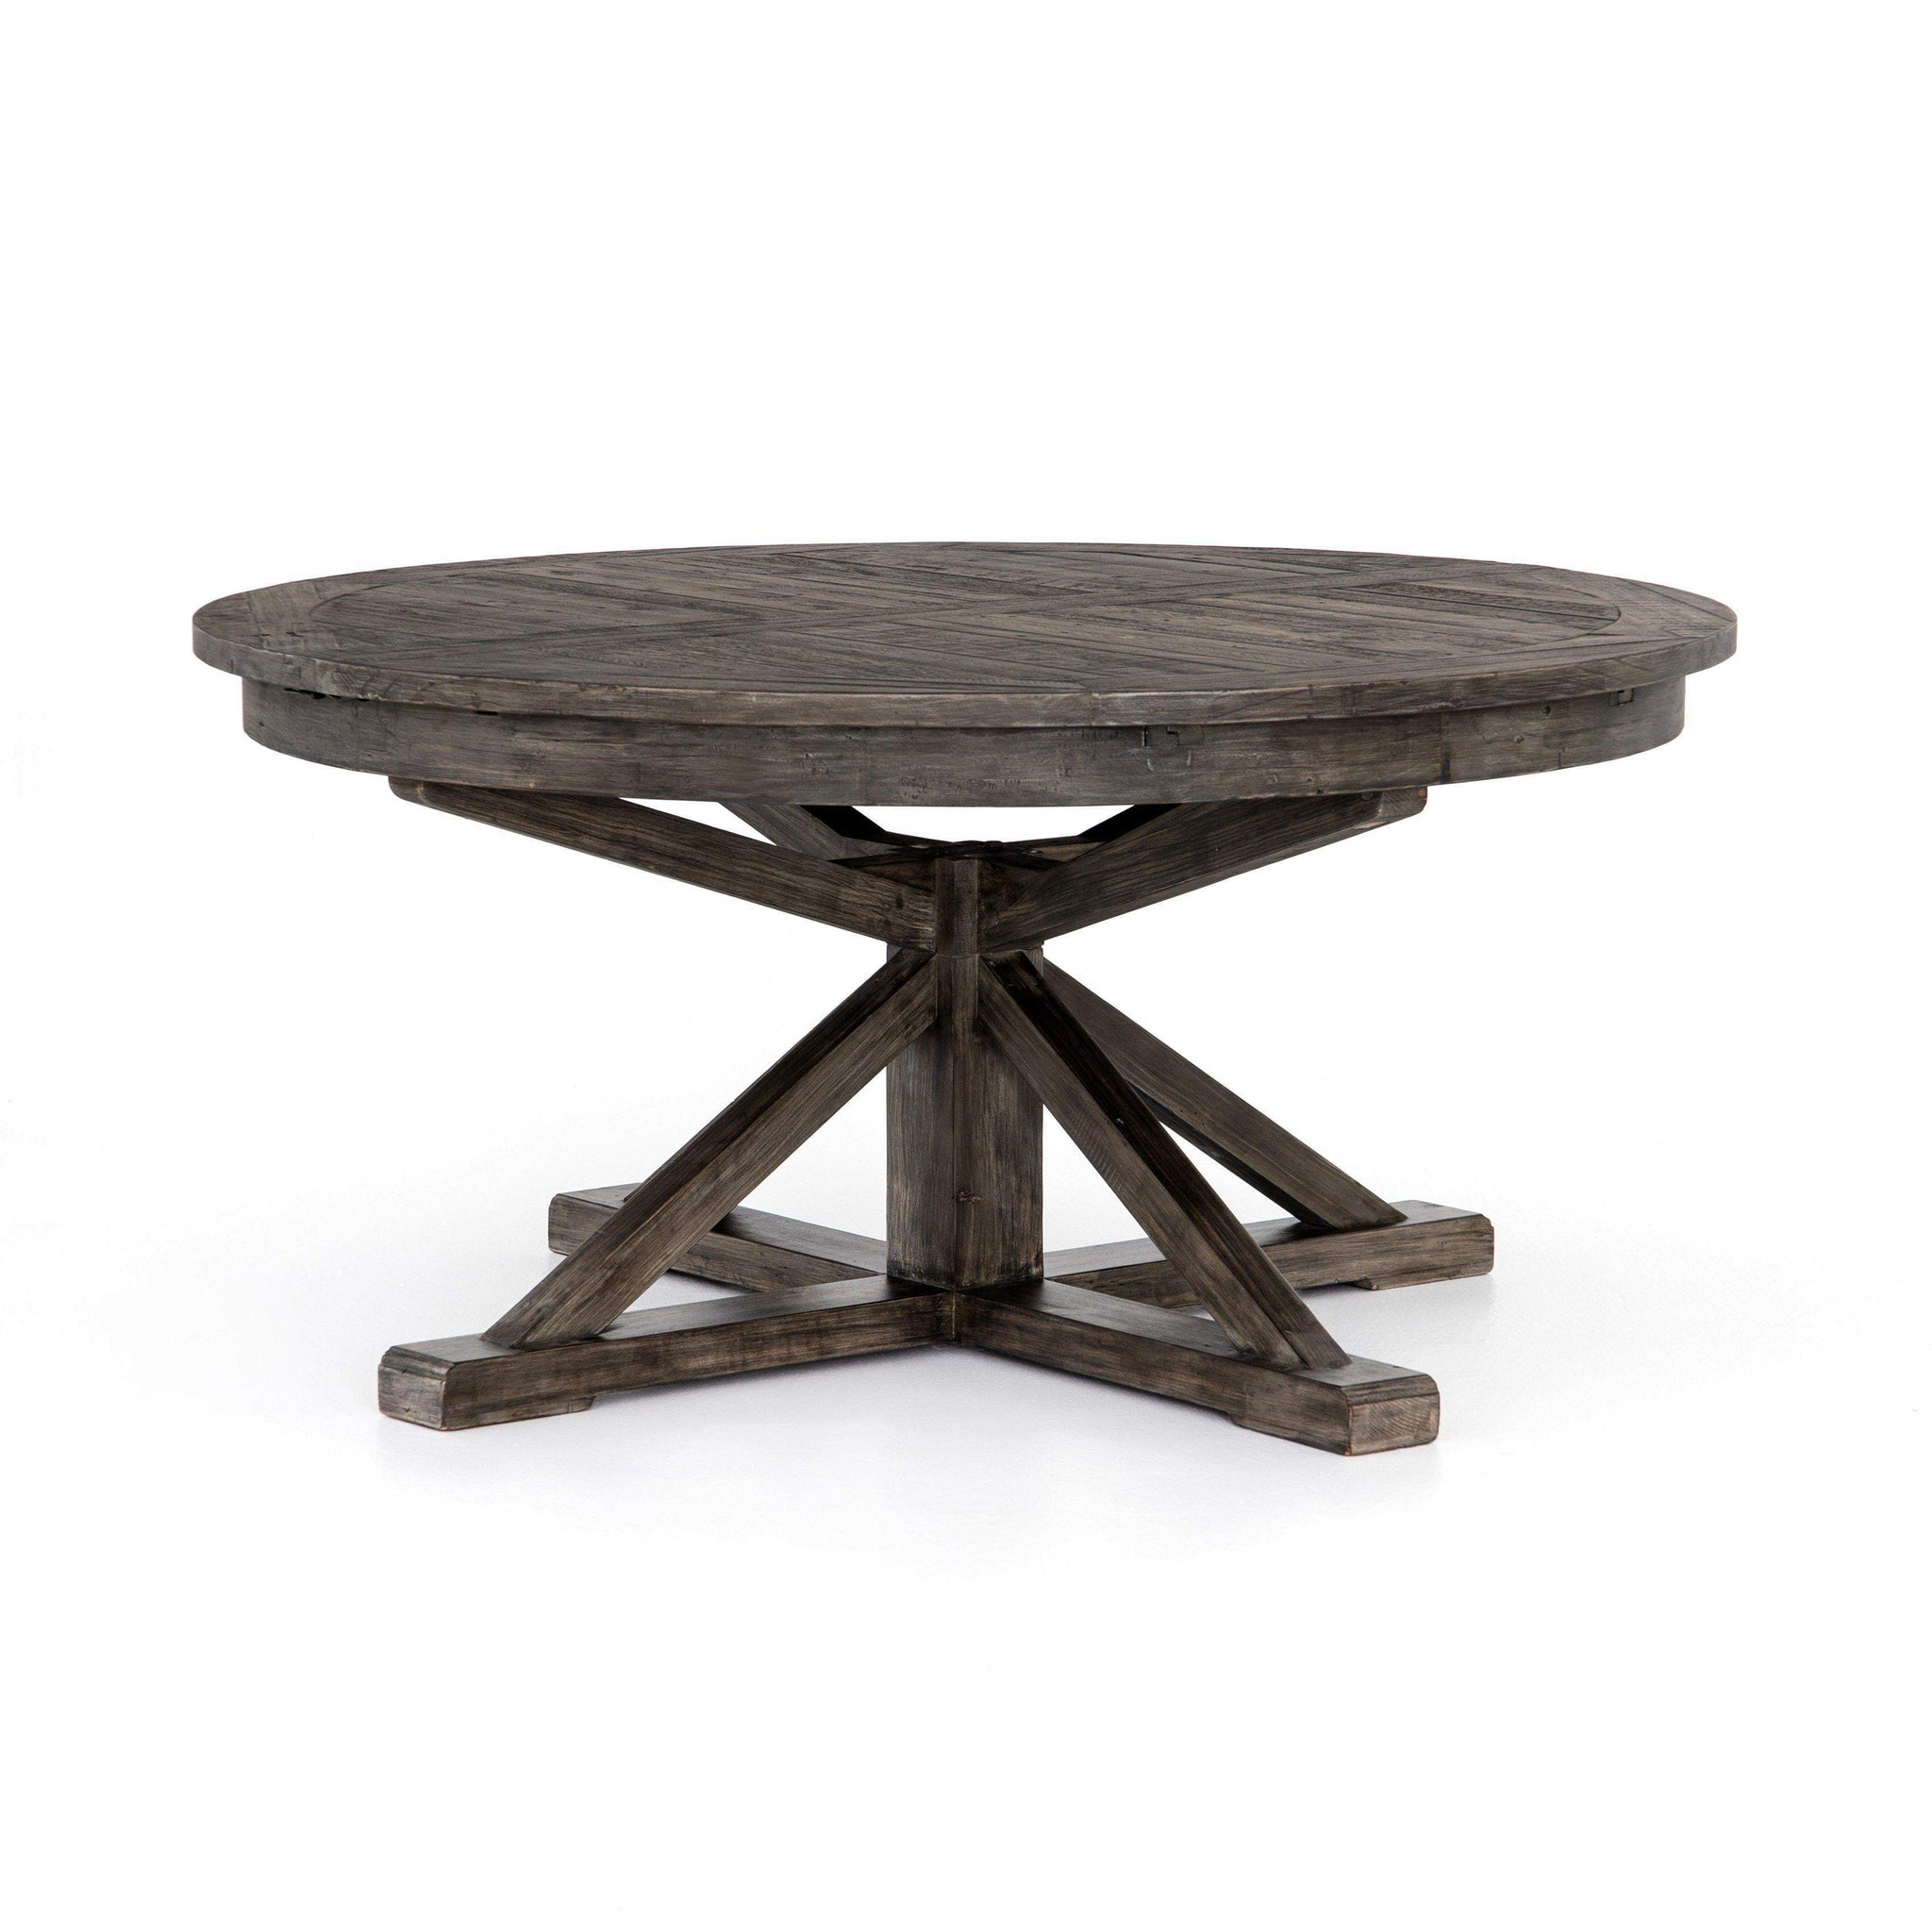 Cintra collection extension dining table rustic black olive dining table parker gwen